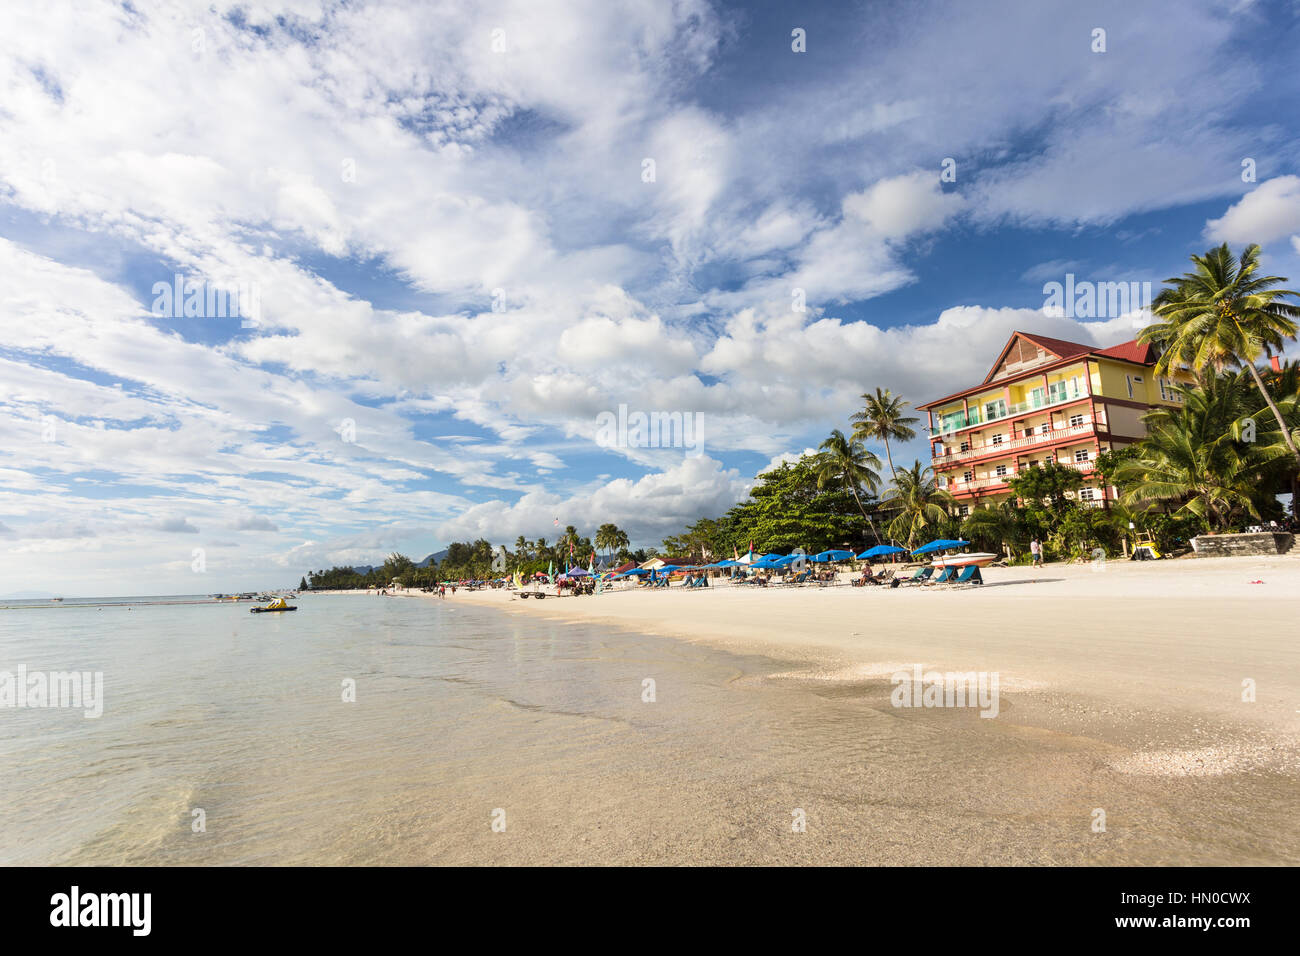 Pantai Cenang is the most popular beach on the Langkawi island along the Andaman sea in Malaysia Kedah state. - Stock Image